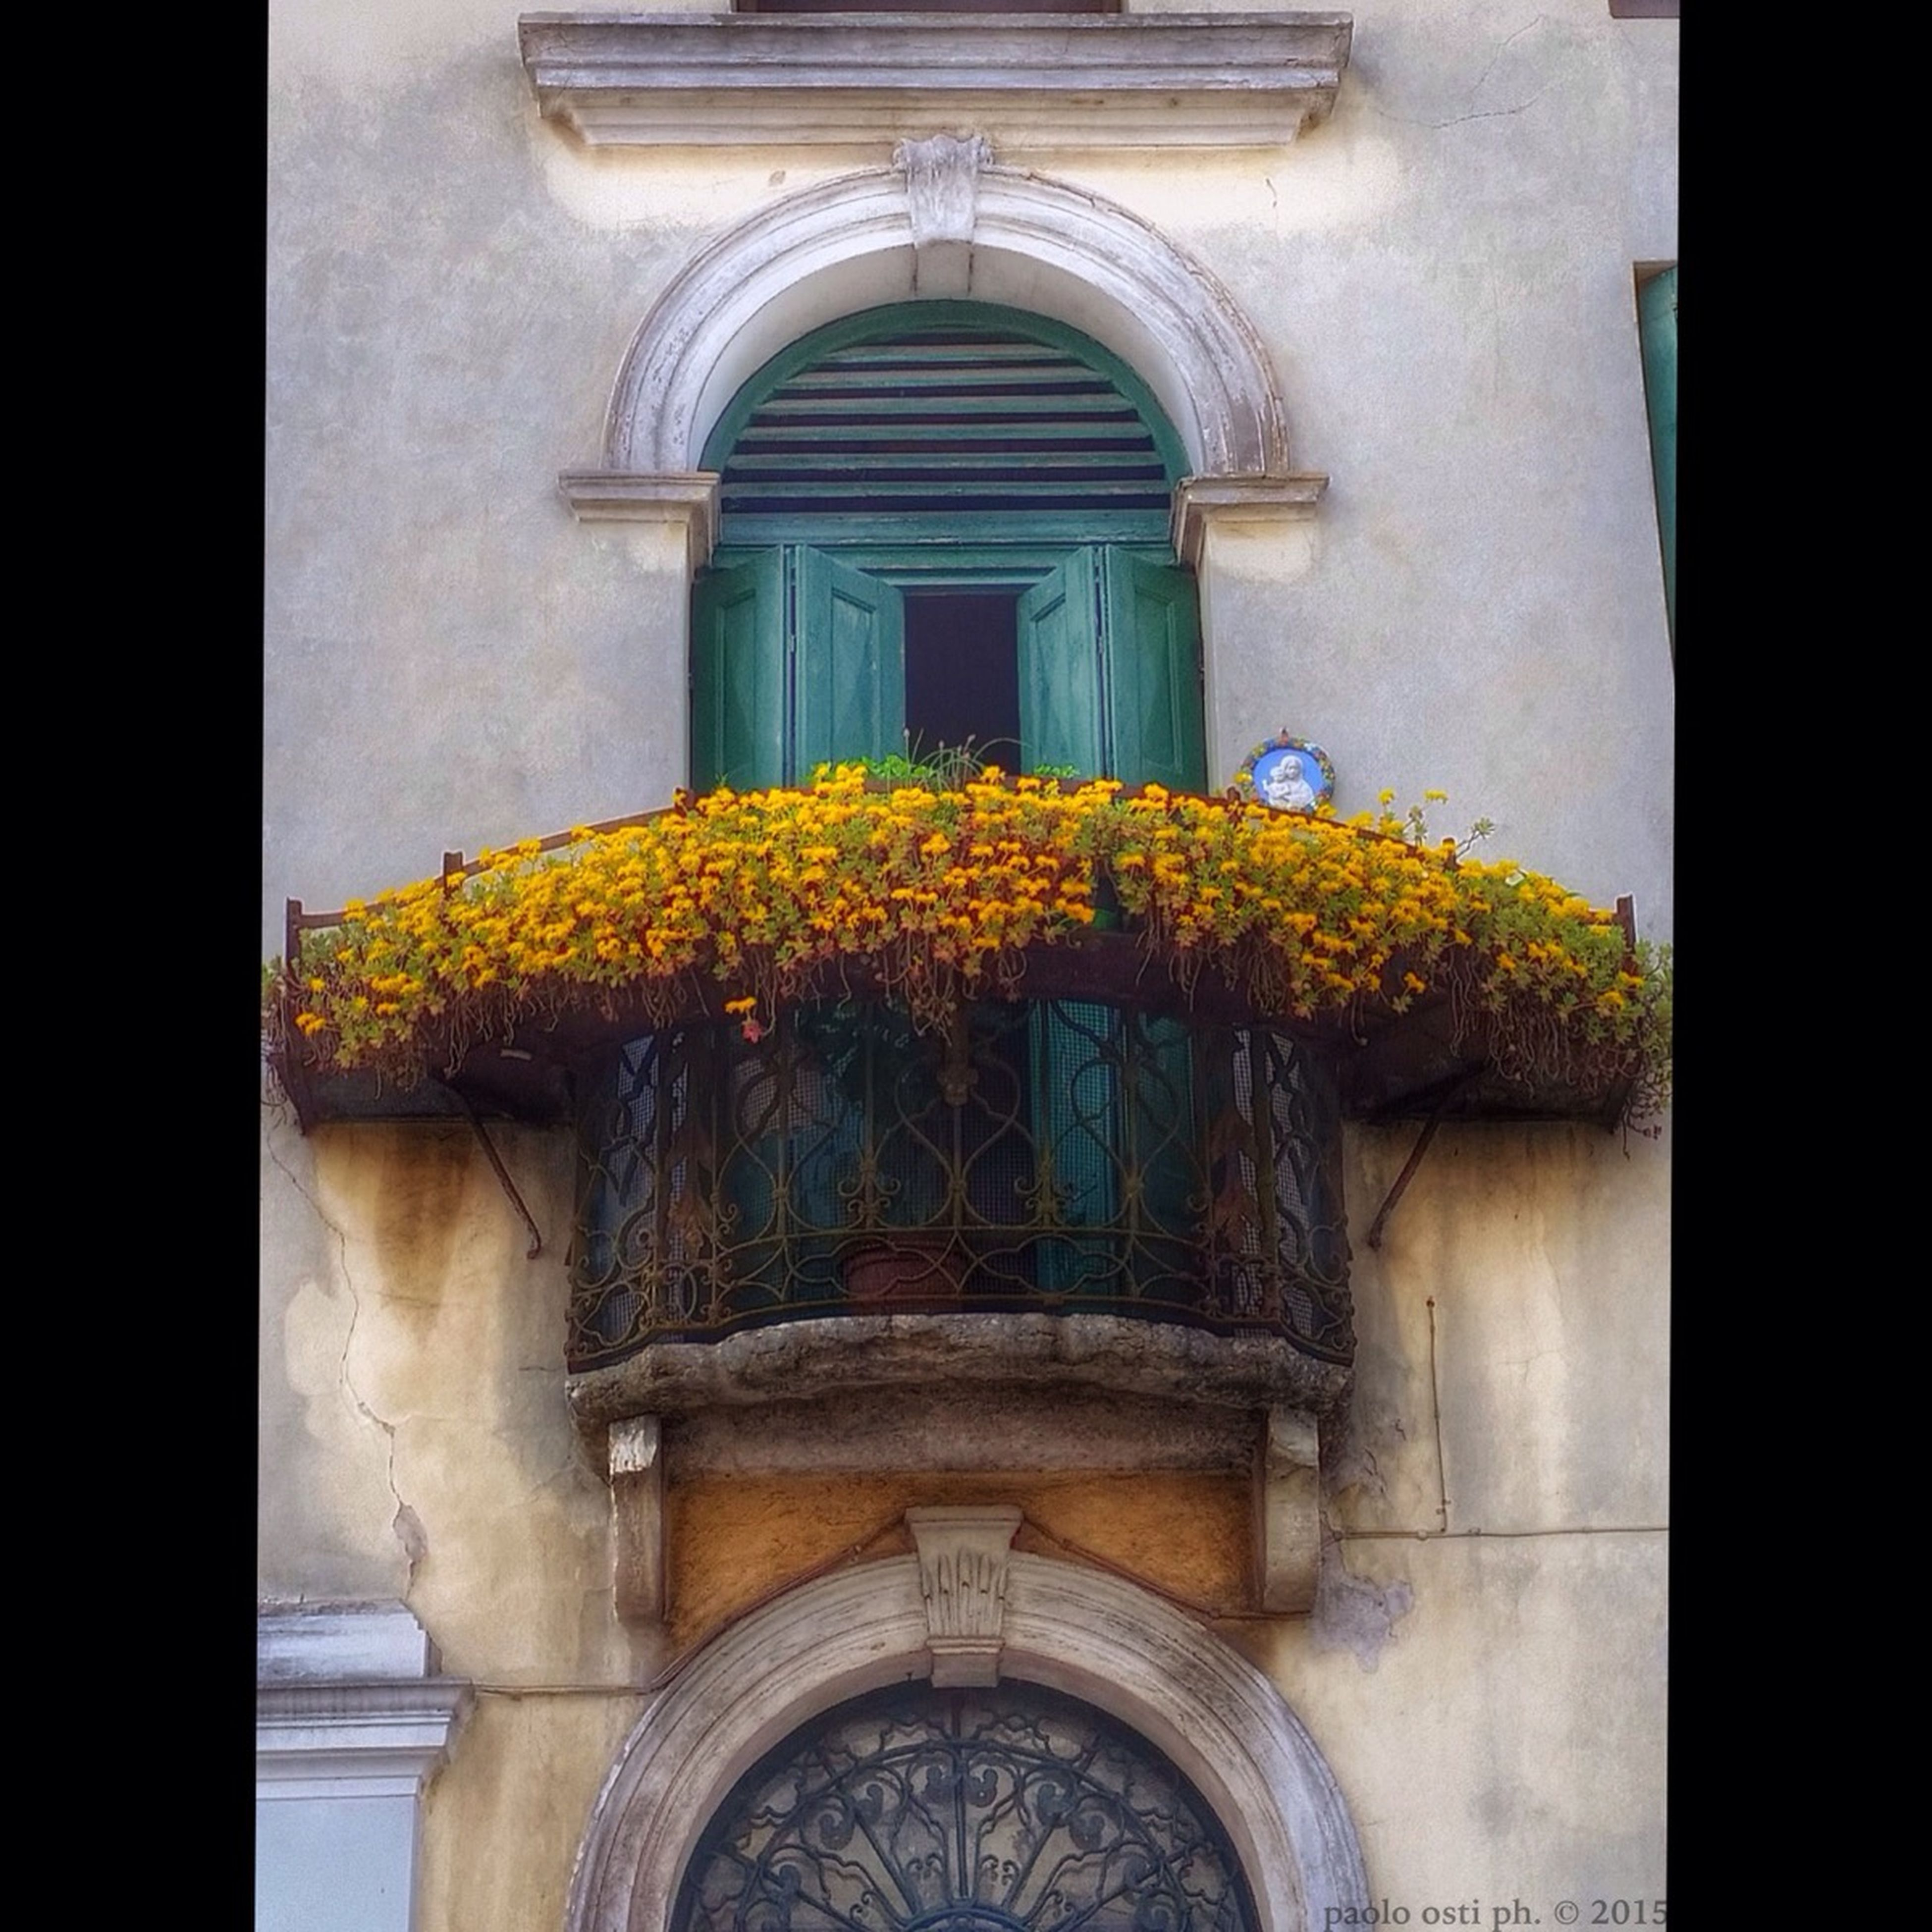 architecture, built structure, arch, building exterior, window, place of worship, religion, church, spirituality, door, entrance, low angle view, yellow, flower, facade, indoors, closed, ornate